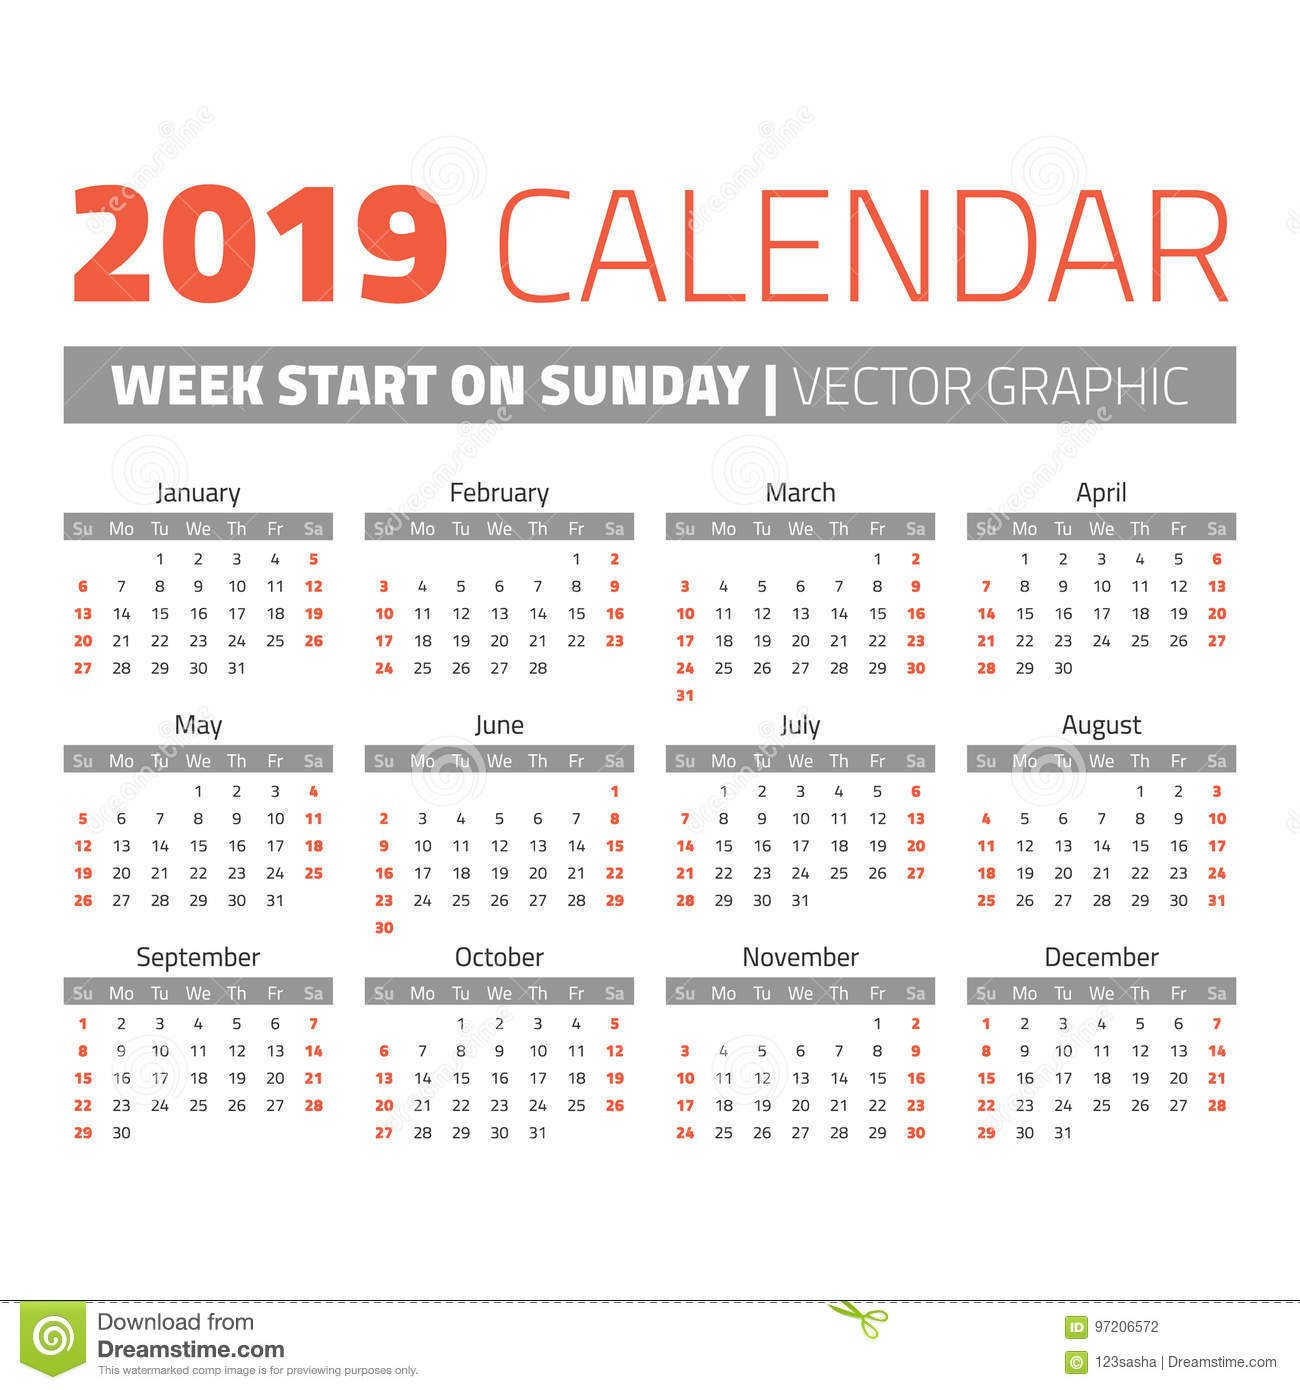 Simple 2019 Year Calendar Stock Vector. Illustration Of Date - 97206572 Calendar Week 6 2019